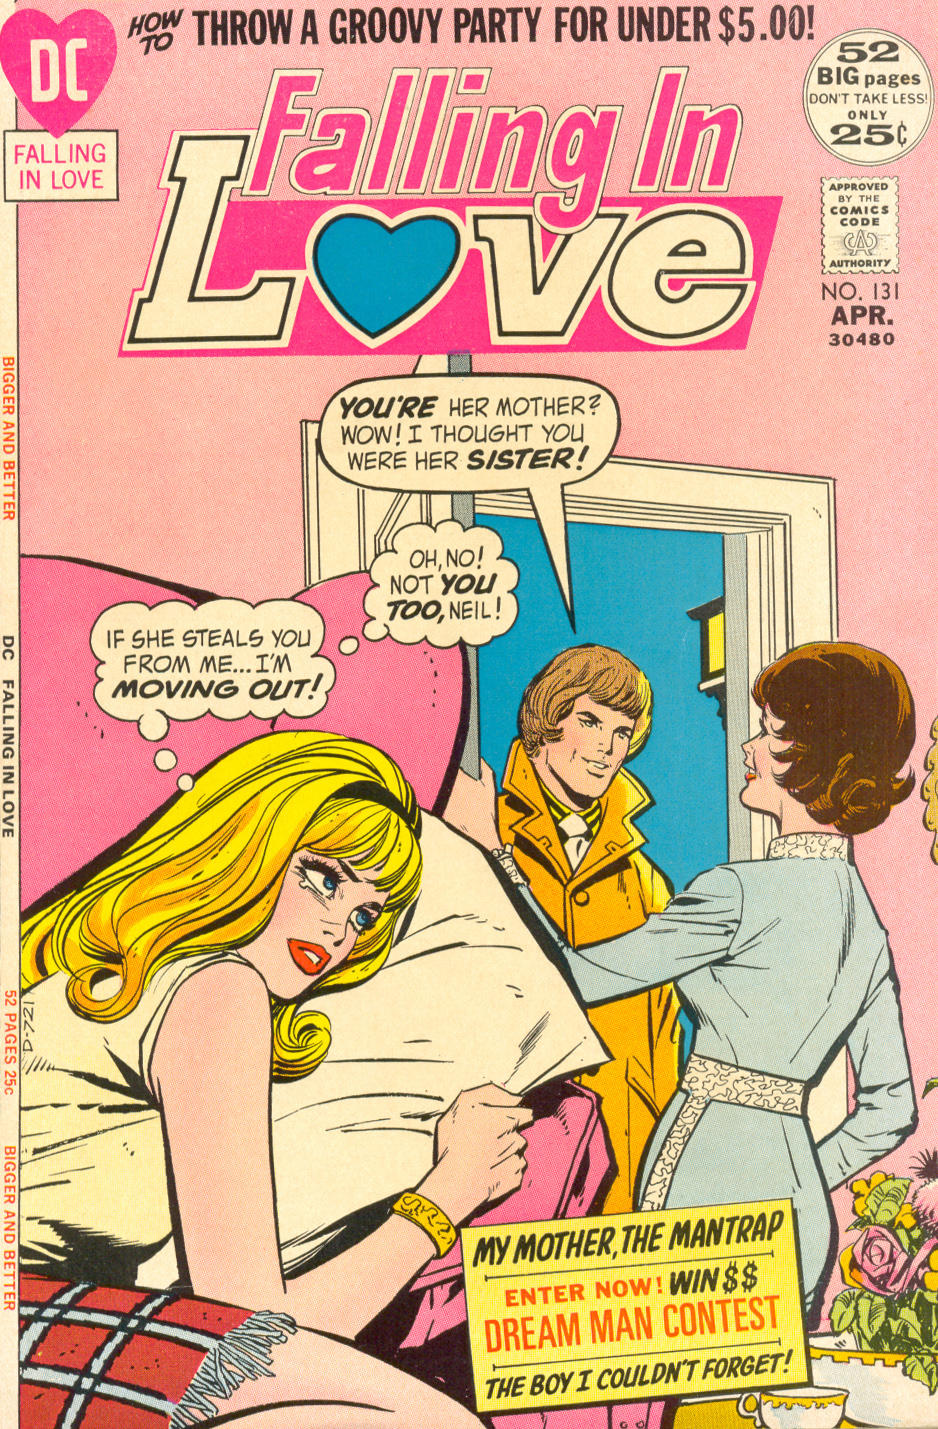 """My Mother, the Mantrap"" from Falling in Love #131 (April 1972)"